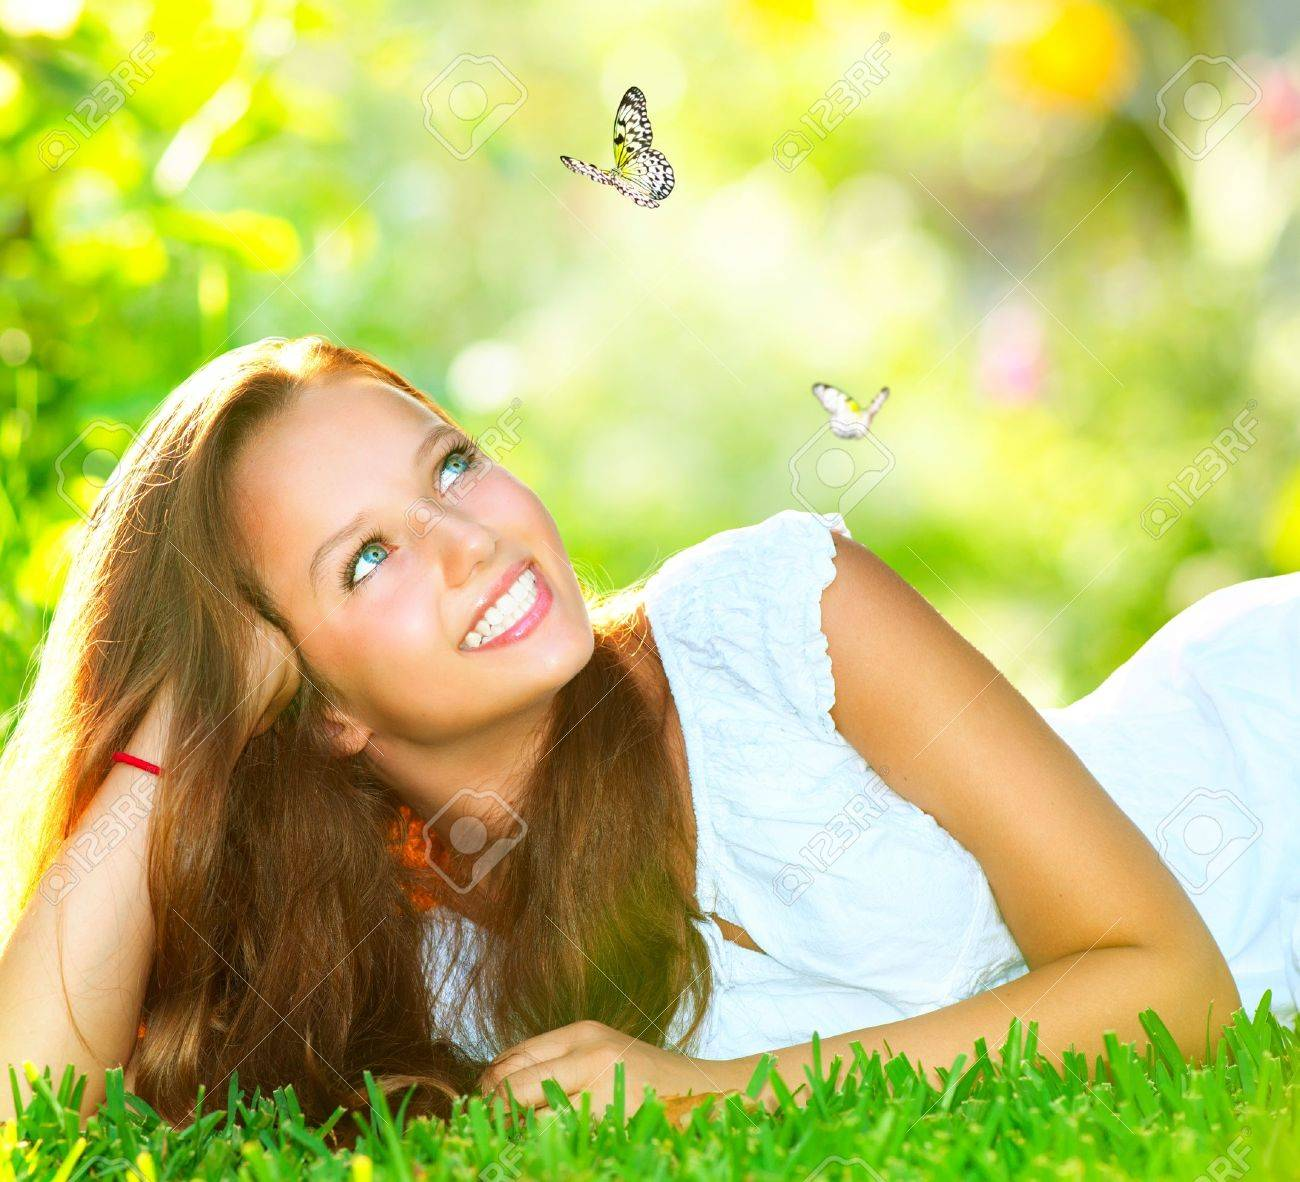 Spring Beauty Beautiful Girl Lying on Green Grass outdoor - 17771906